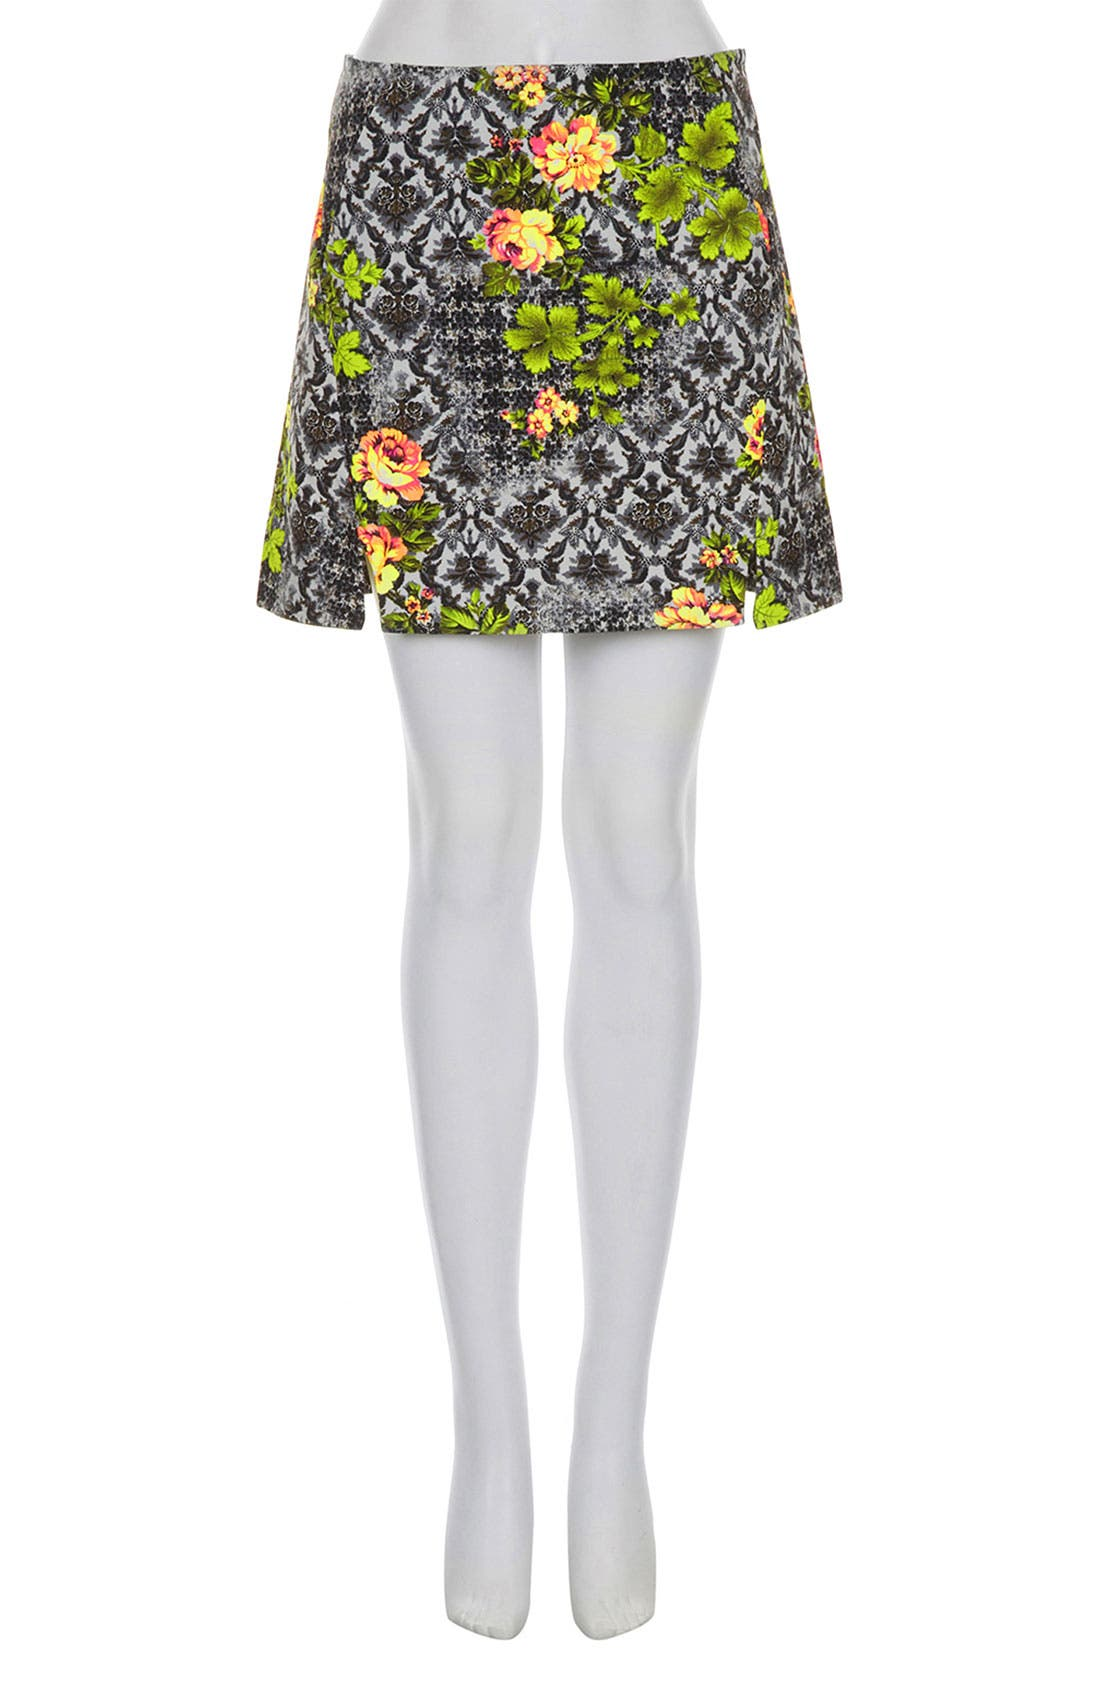 Alternate Image 3  - Topshop 'Acid Leaf' A-Line Skirt